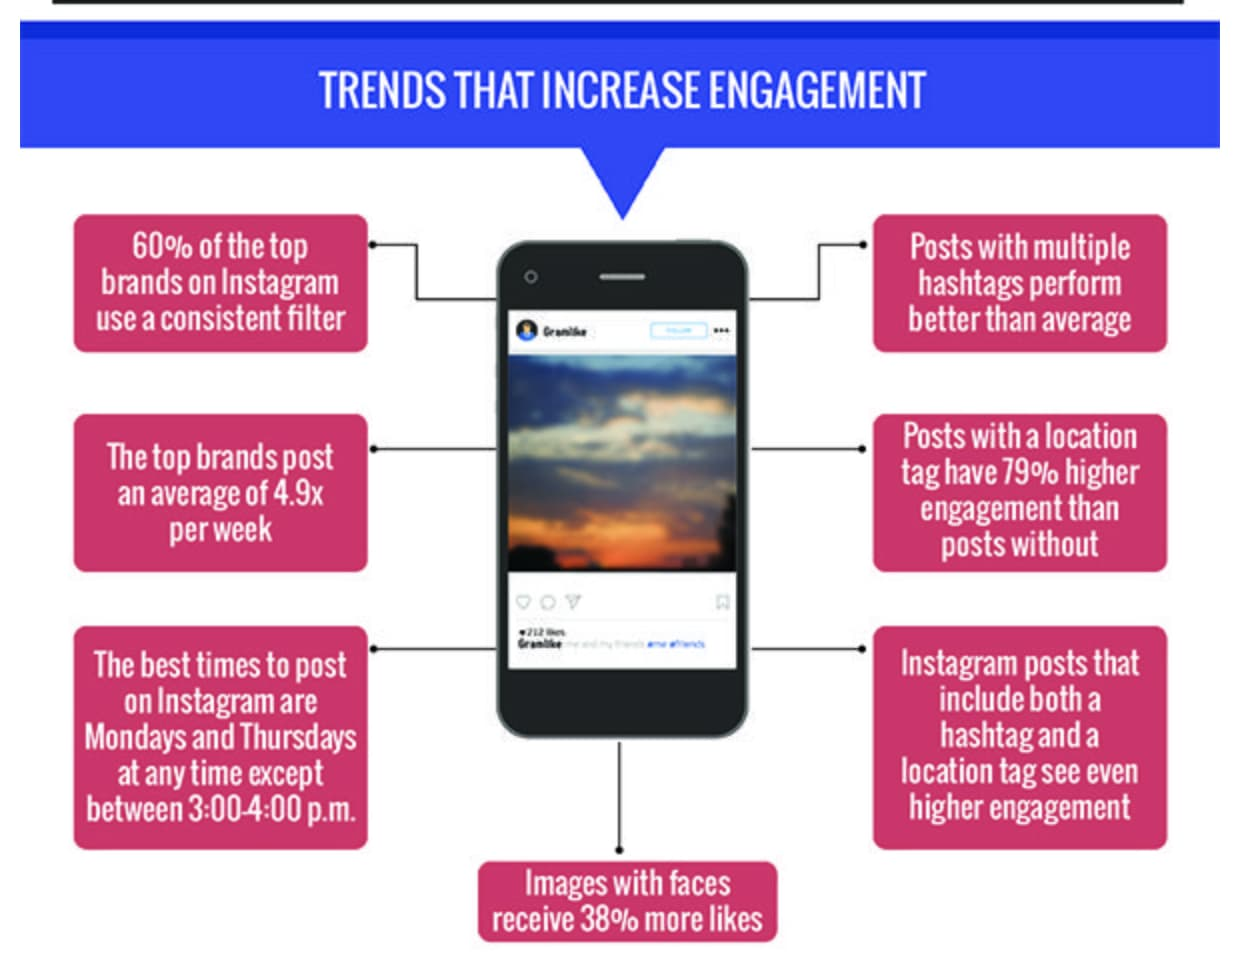 Tendenze che aumentano l'engagement su Instagram